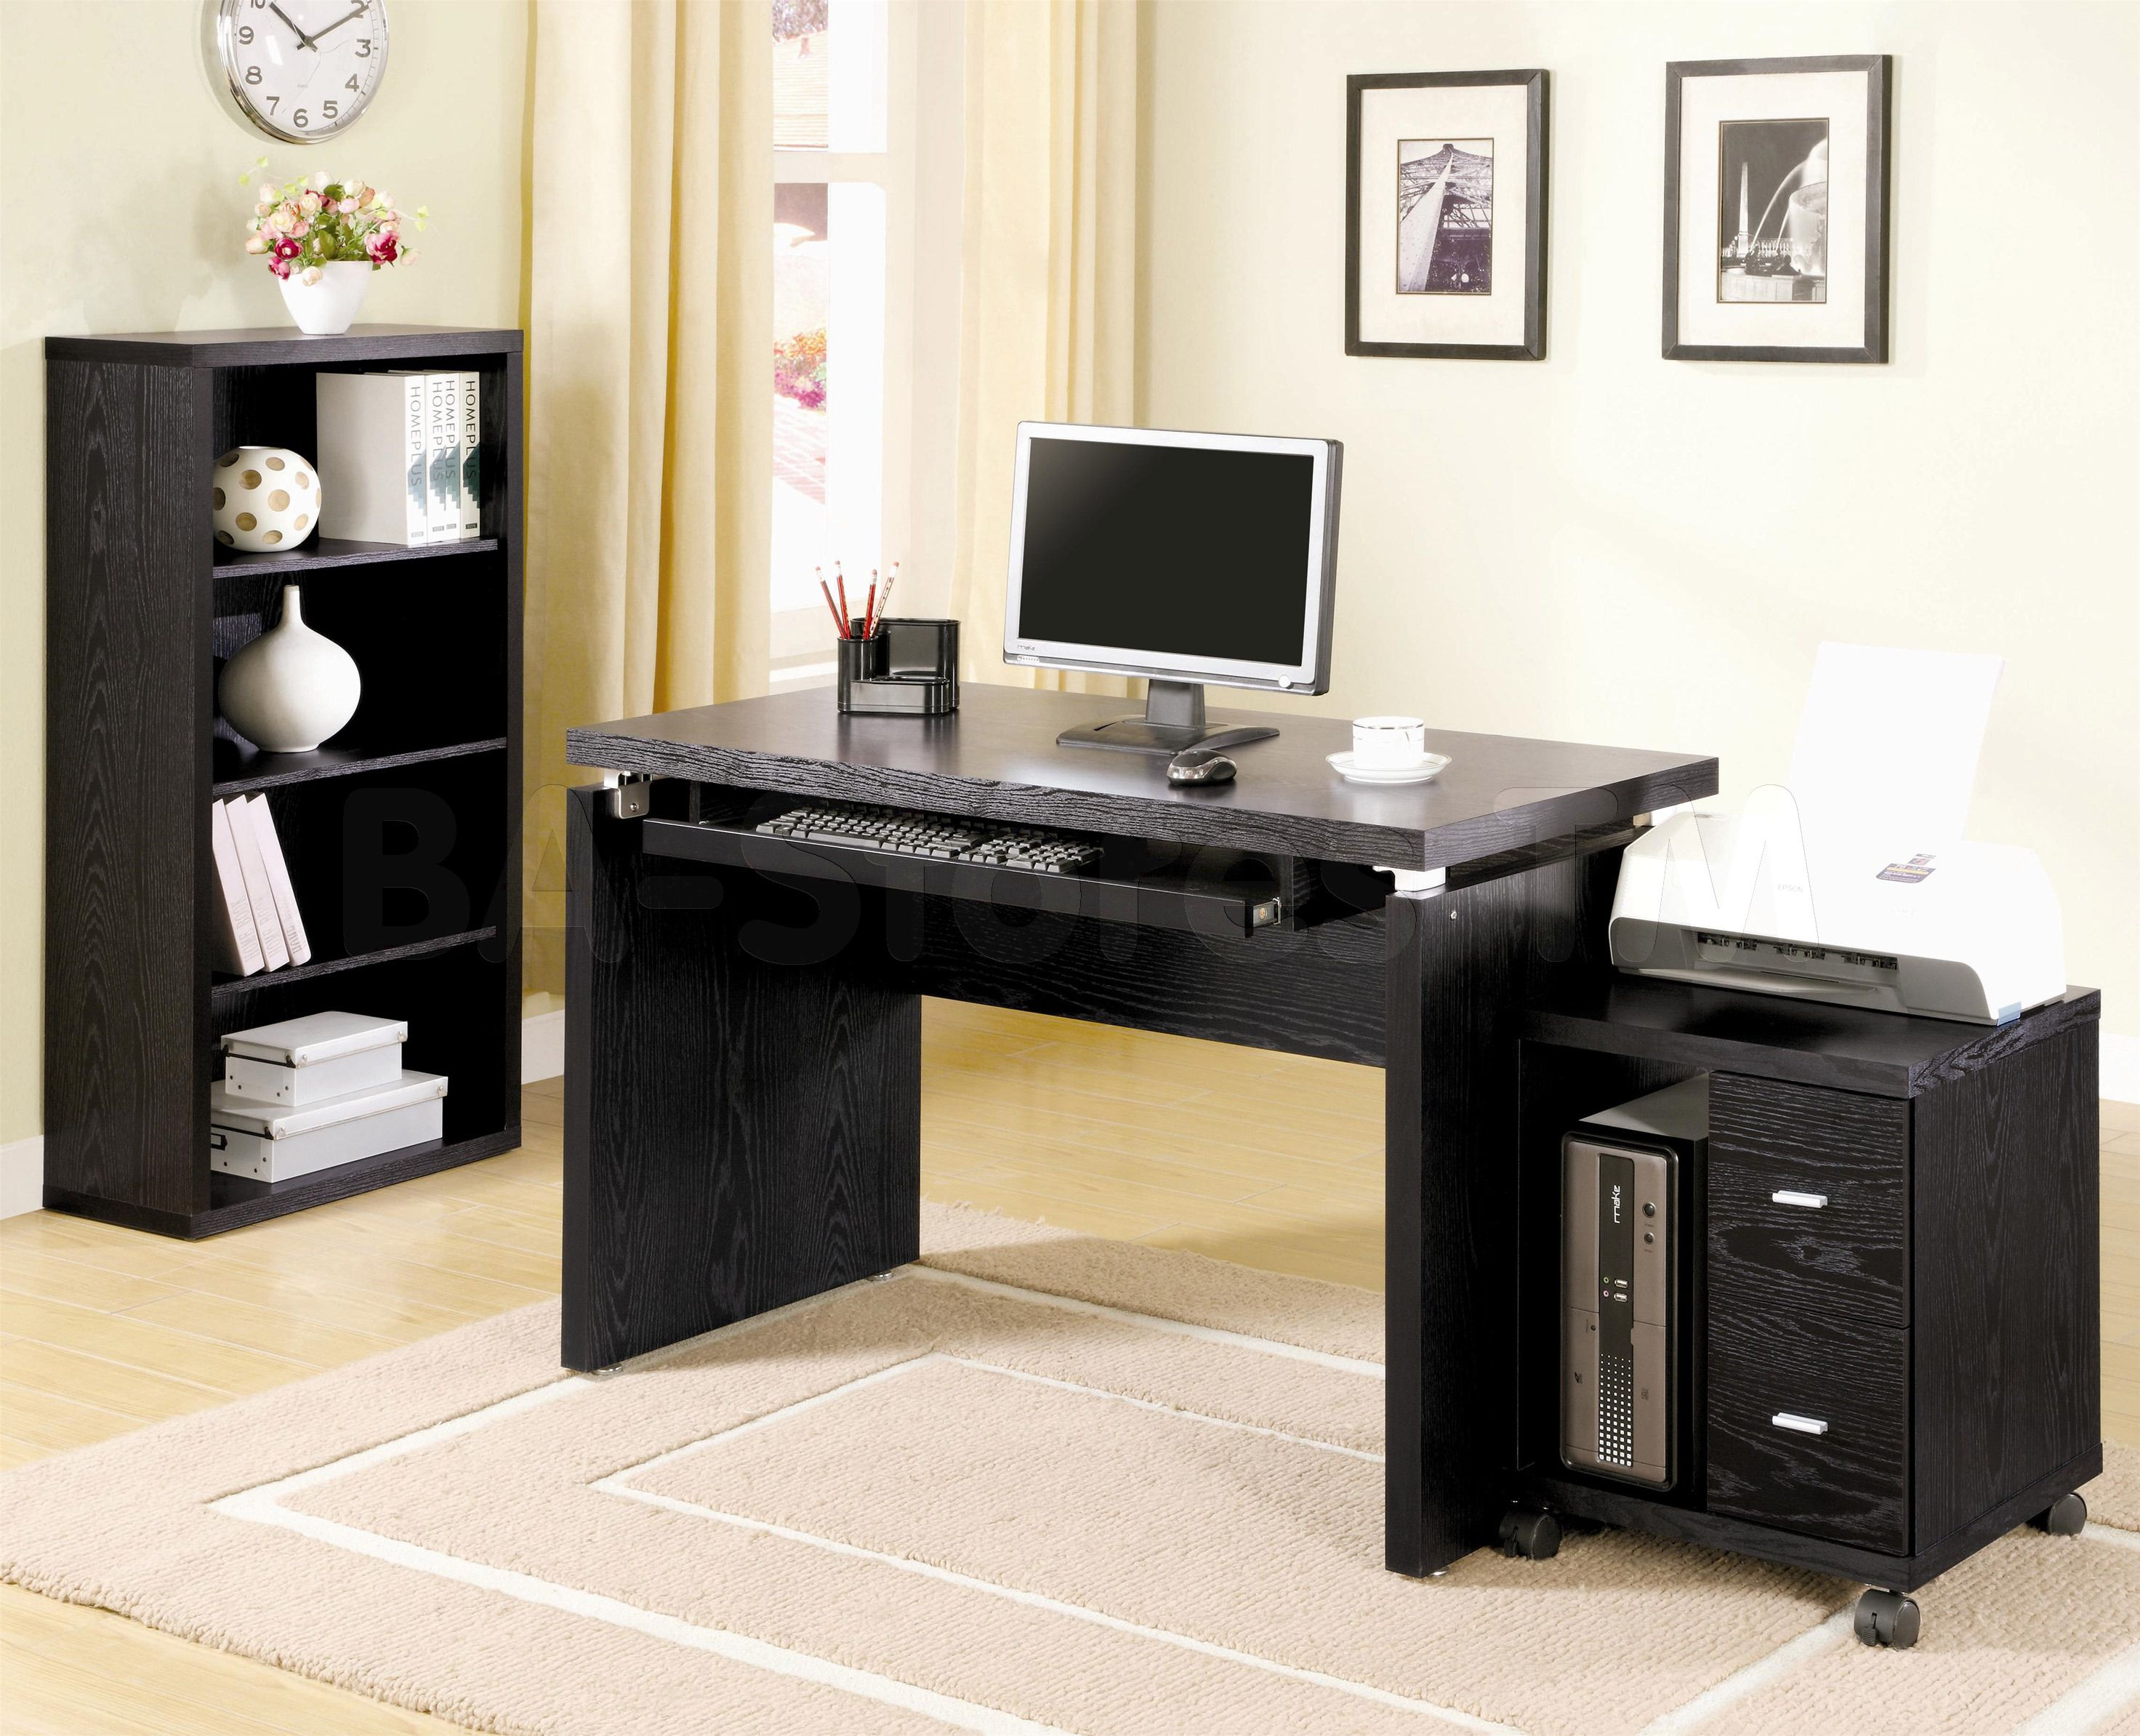 best images about cheap home office on pinterest home office home desk design